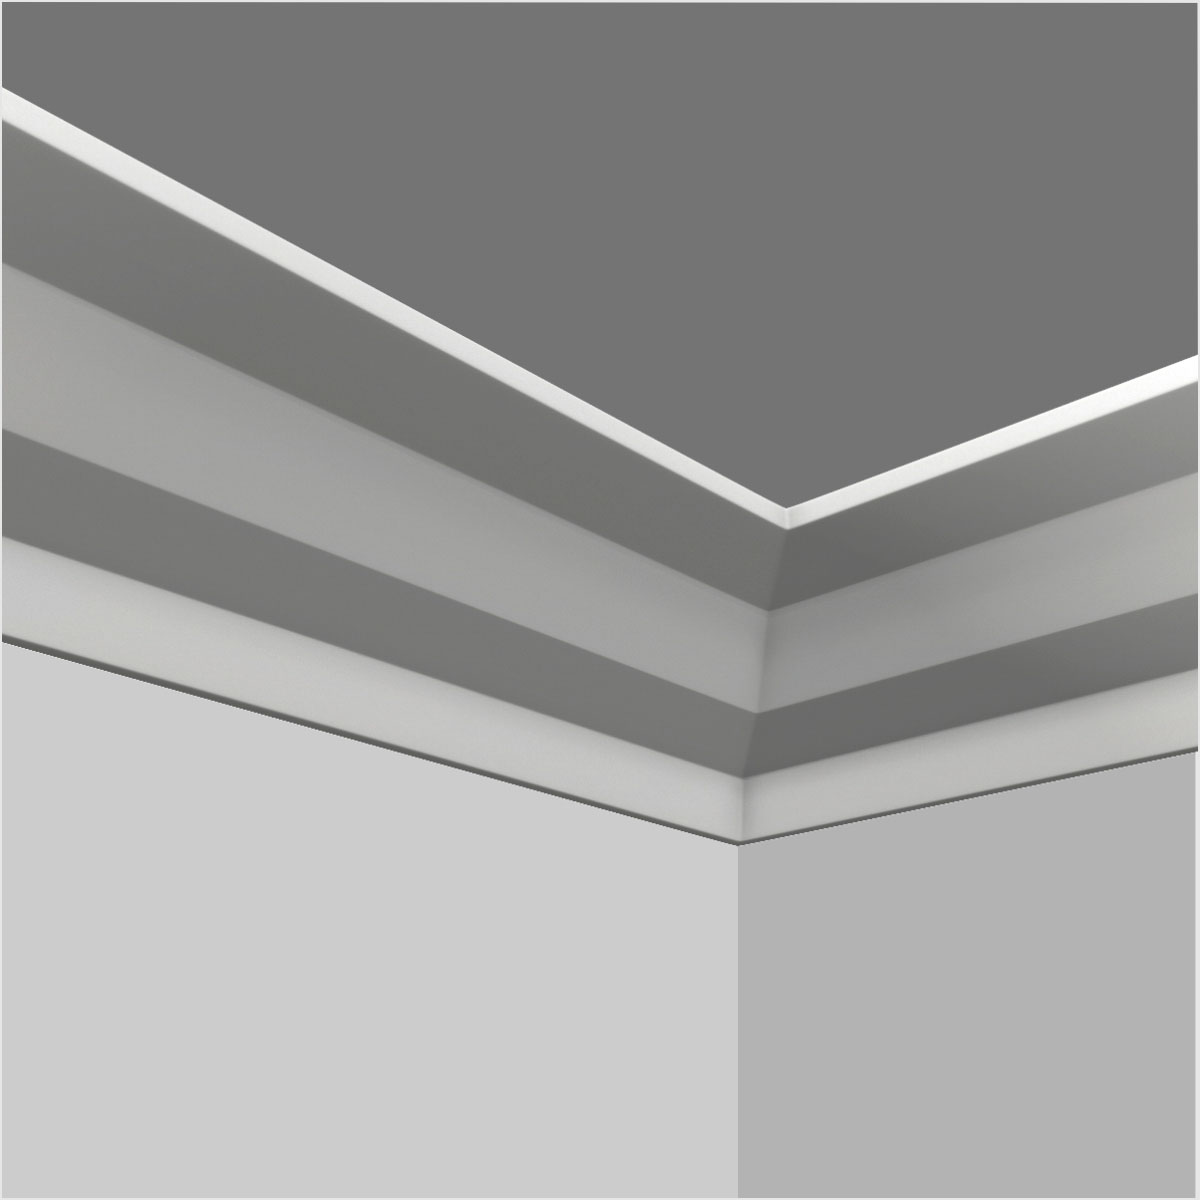 Polyurethane kitchen cabinet crown moulding supplier